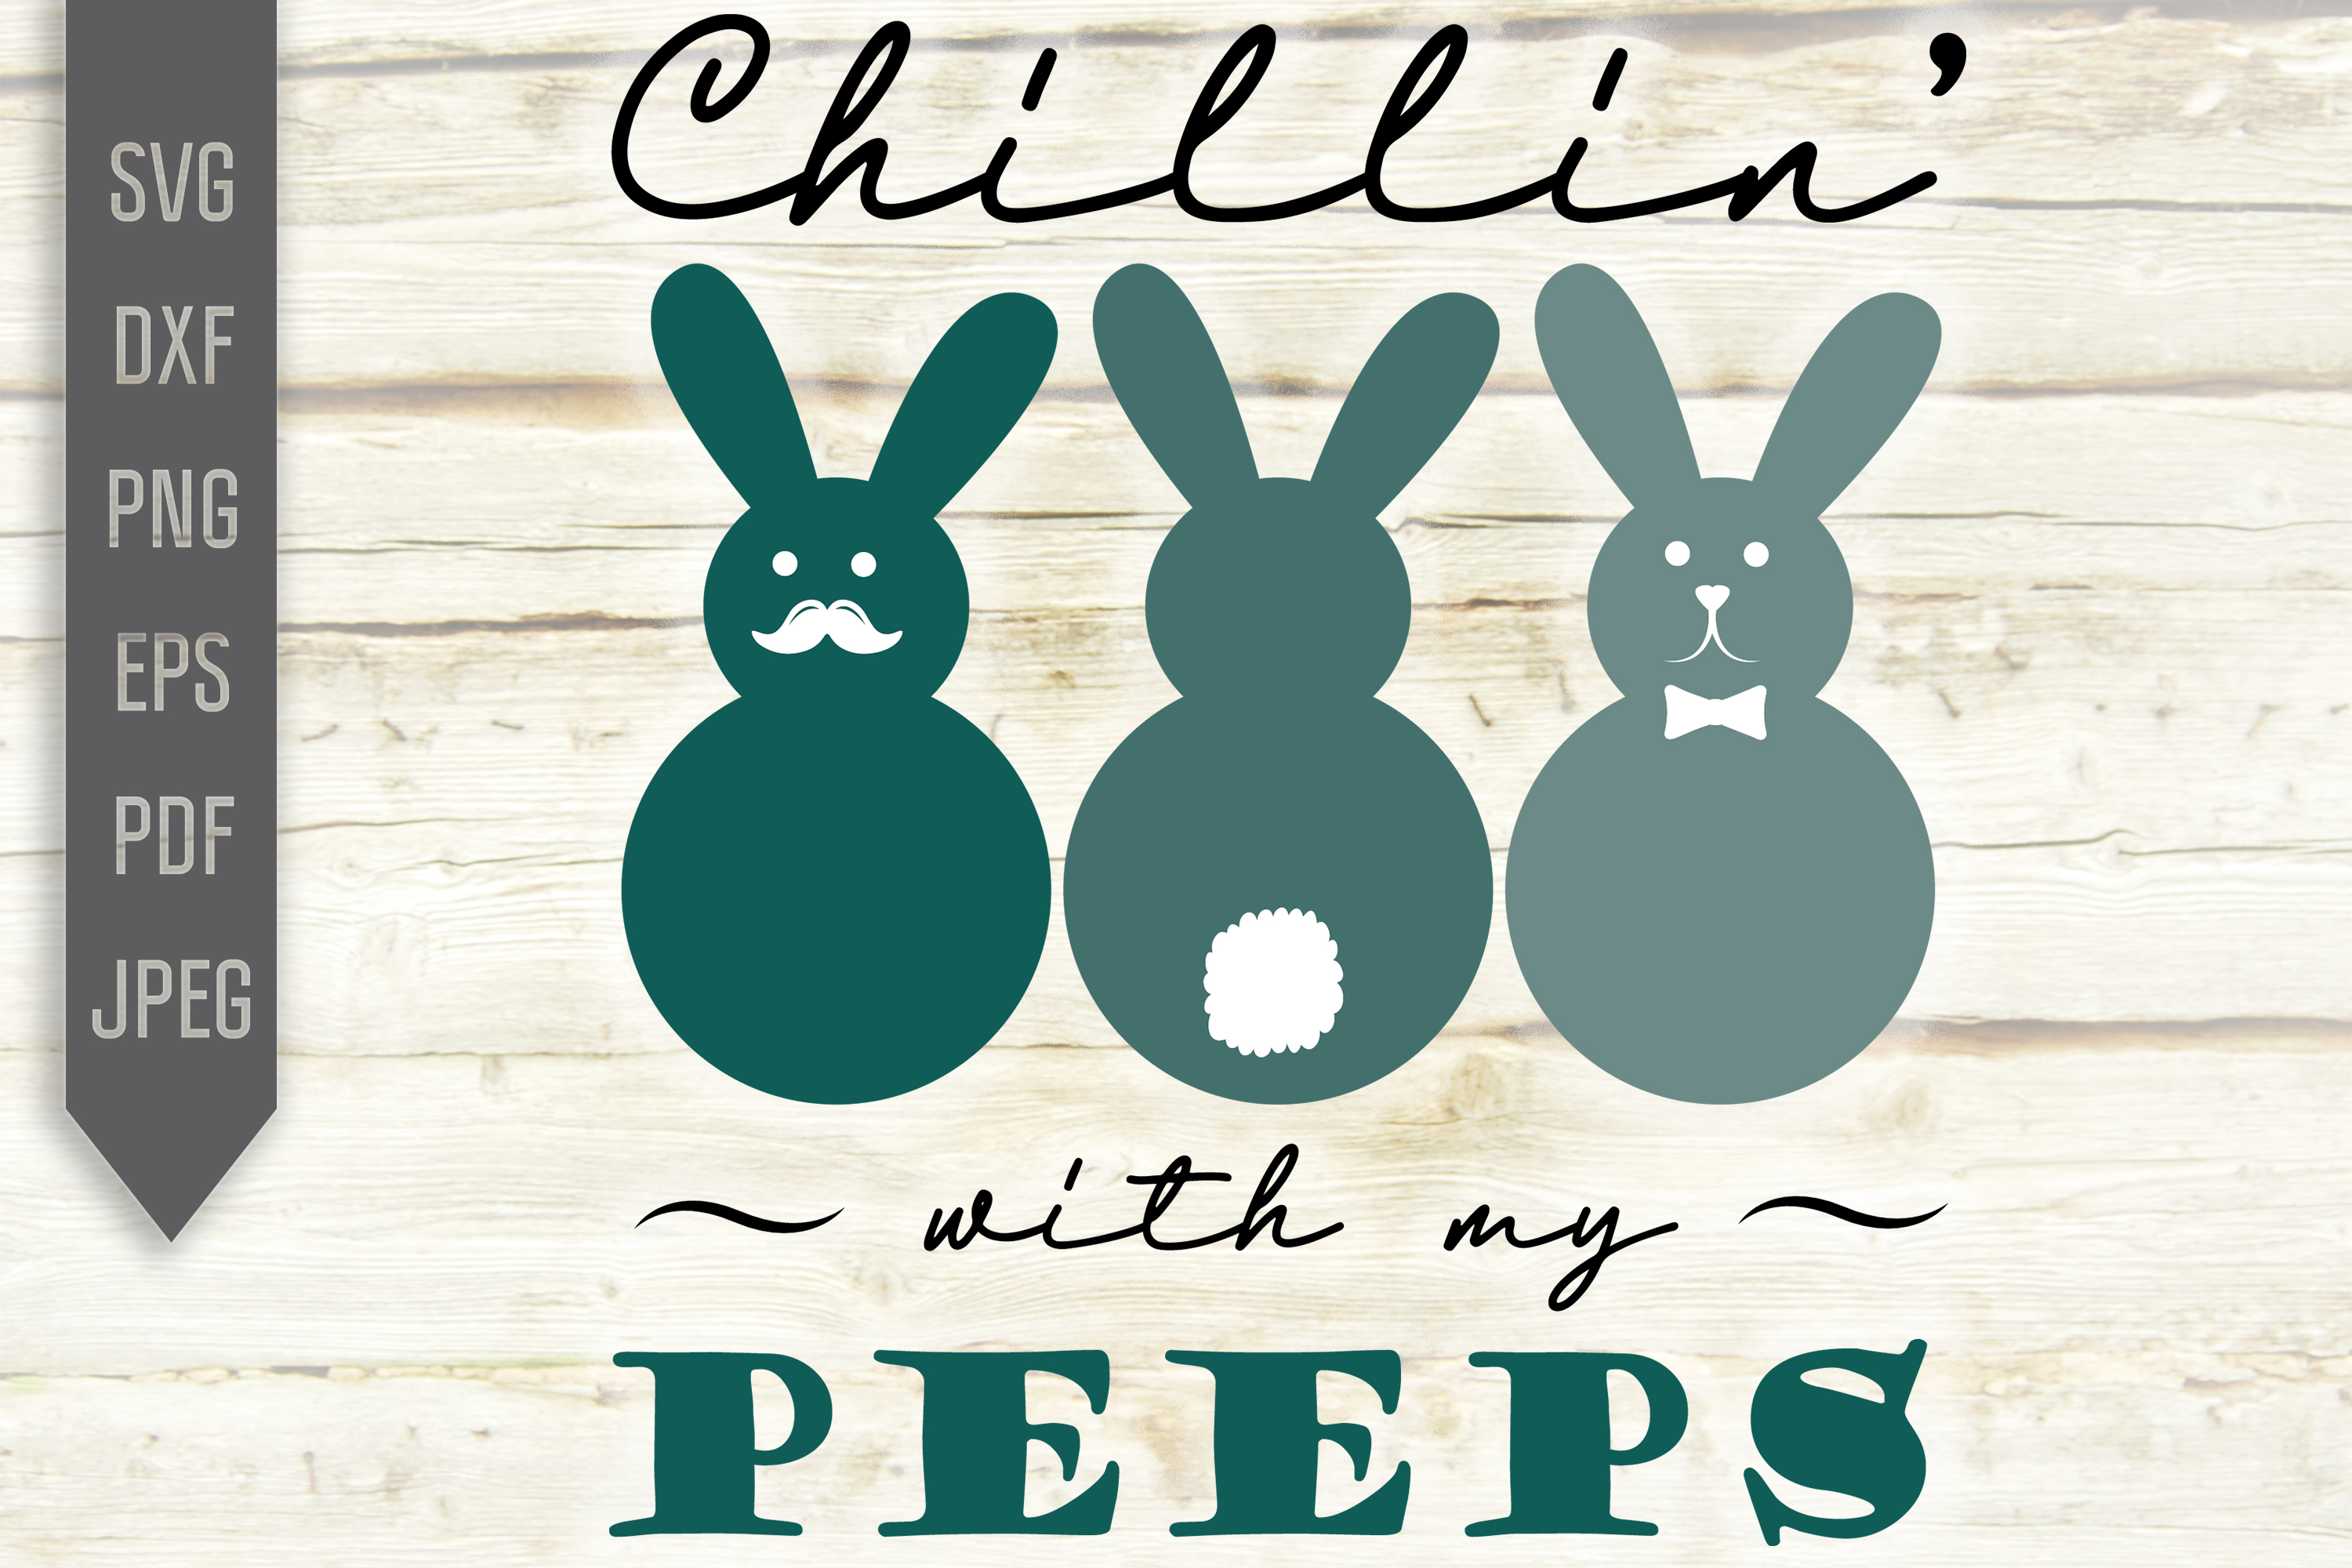 Download Free Chillin With My Peeps Easter Graphic By Svglaboratory for Cricut Explore, Silhouette and other cutting machines.